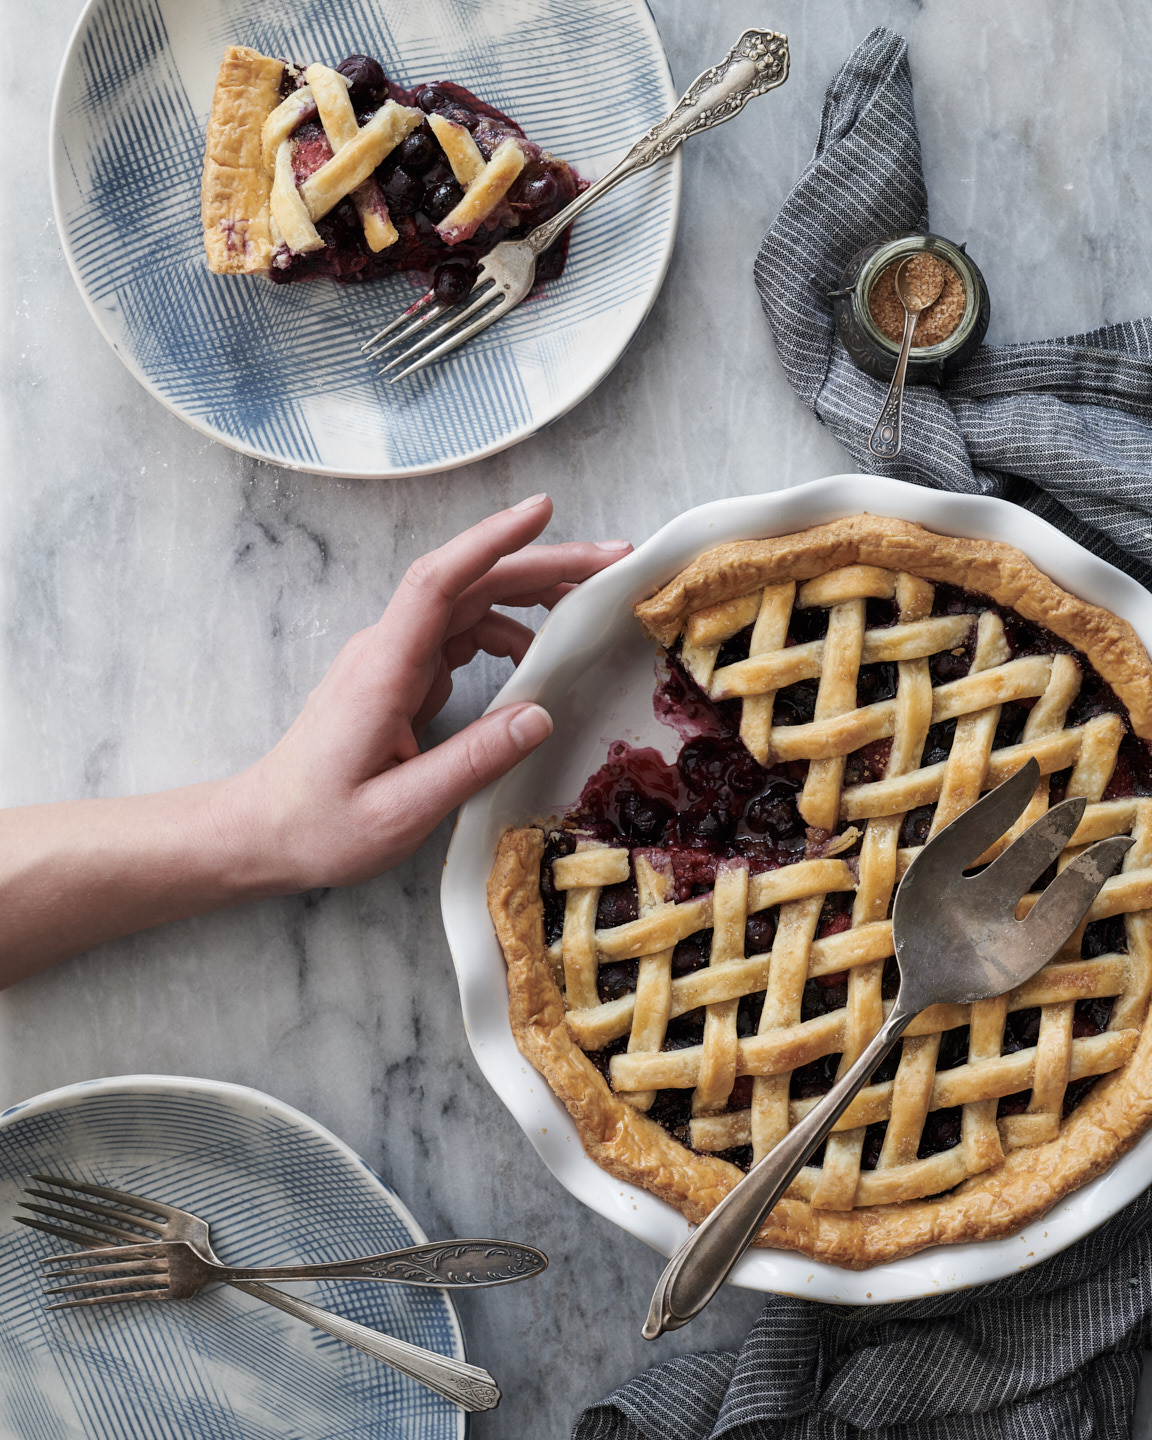 country living Berry Pie styled by Jessica Stewart Prop Stylist Specializing in food styling Imagery and set design